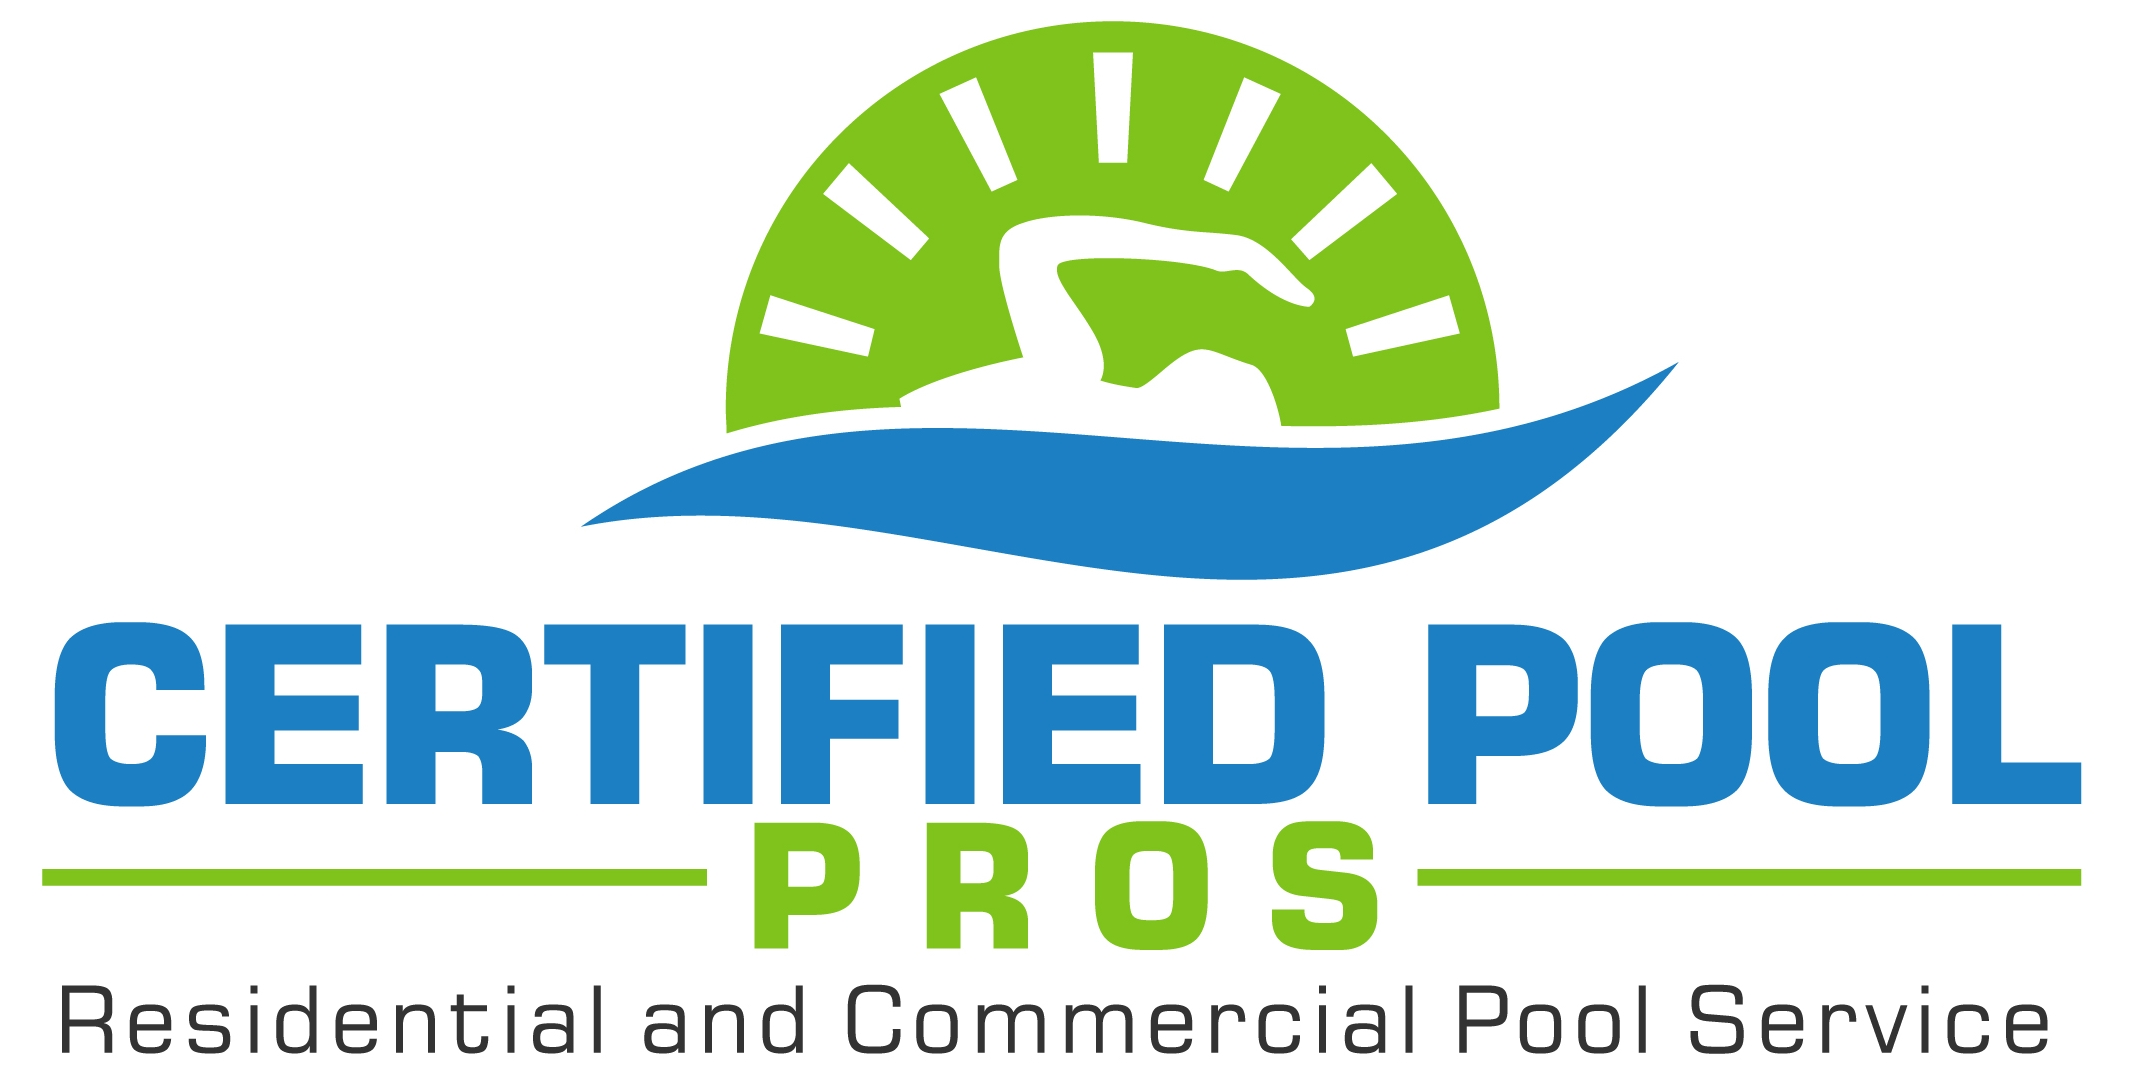 Certified Pool Pros In Lake Mary Fl 32746